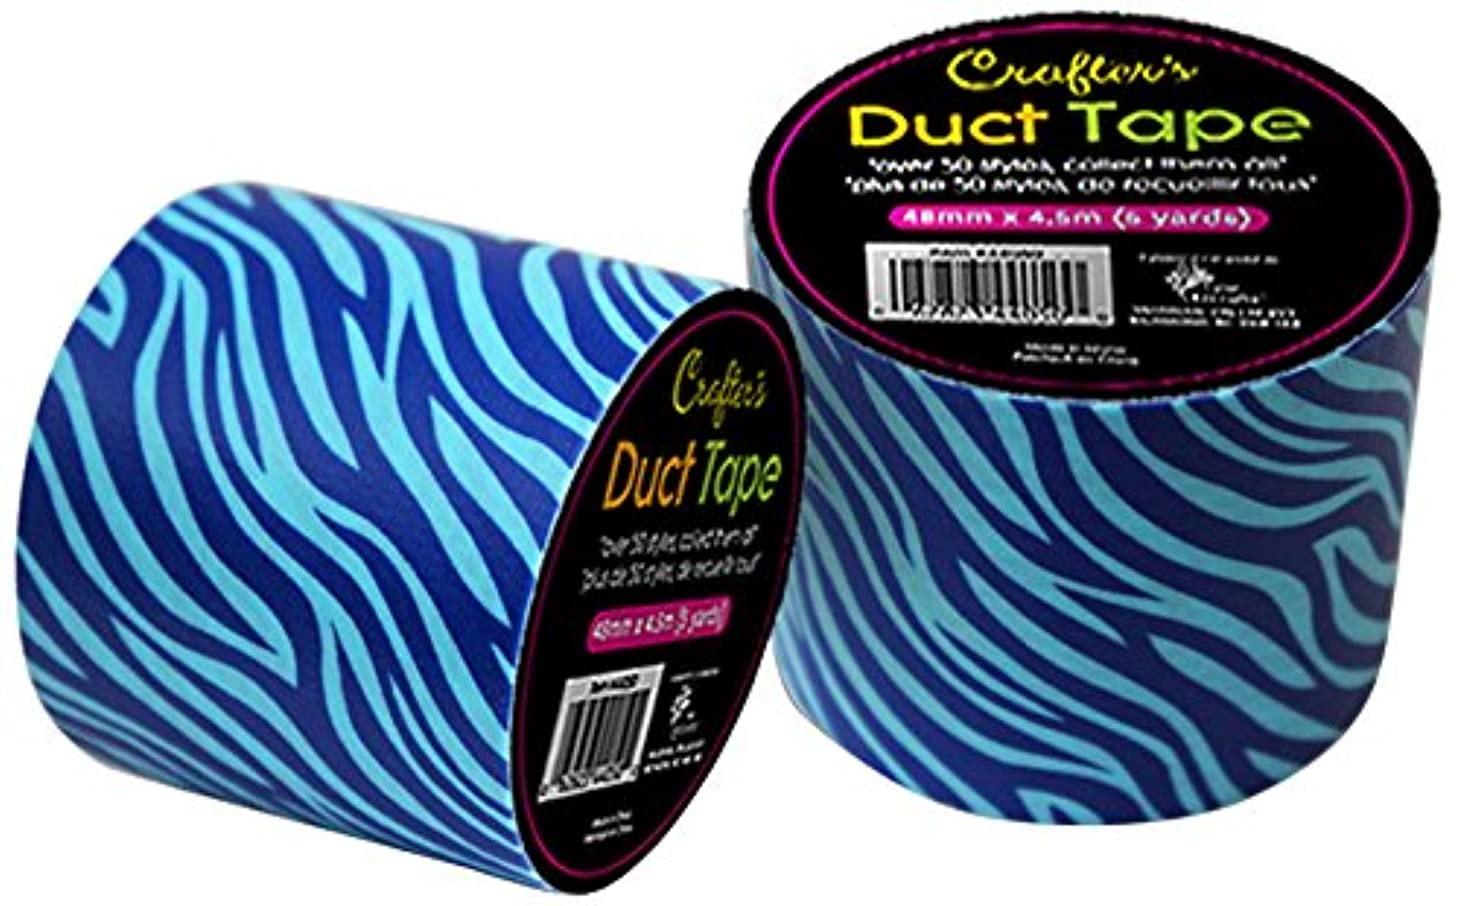 CTG, Crafters Duct Tape, 1.9 Inches, Zebra Blue, 6 Pieces